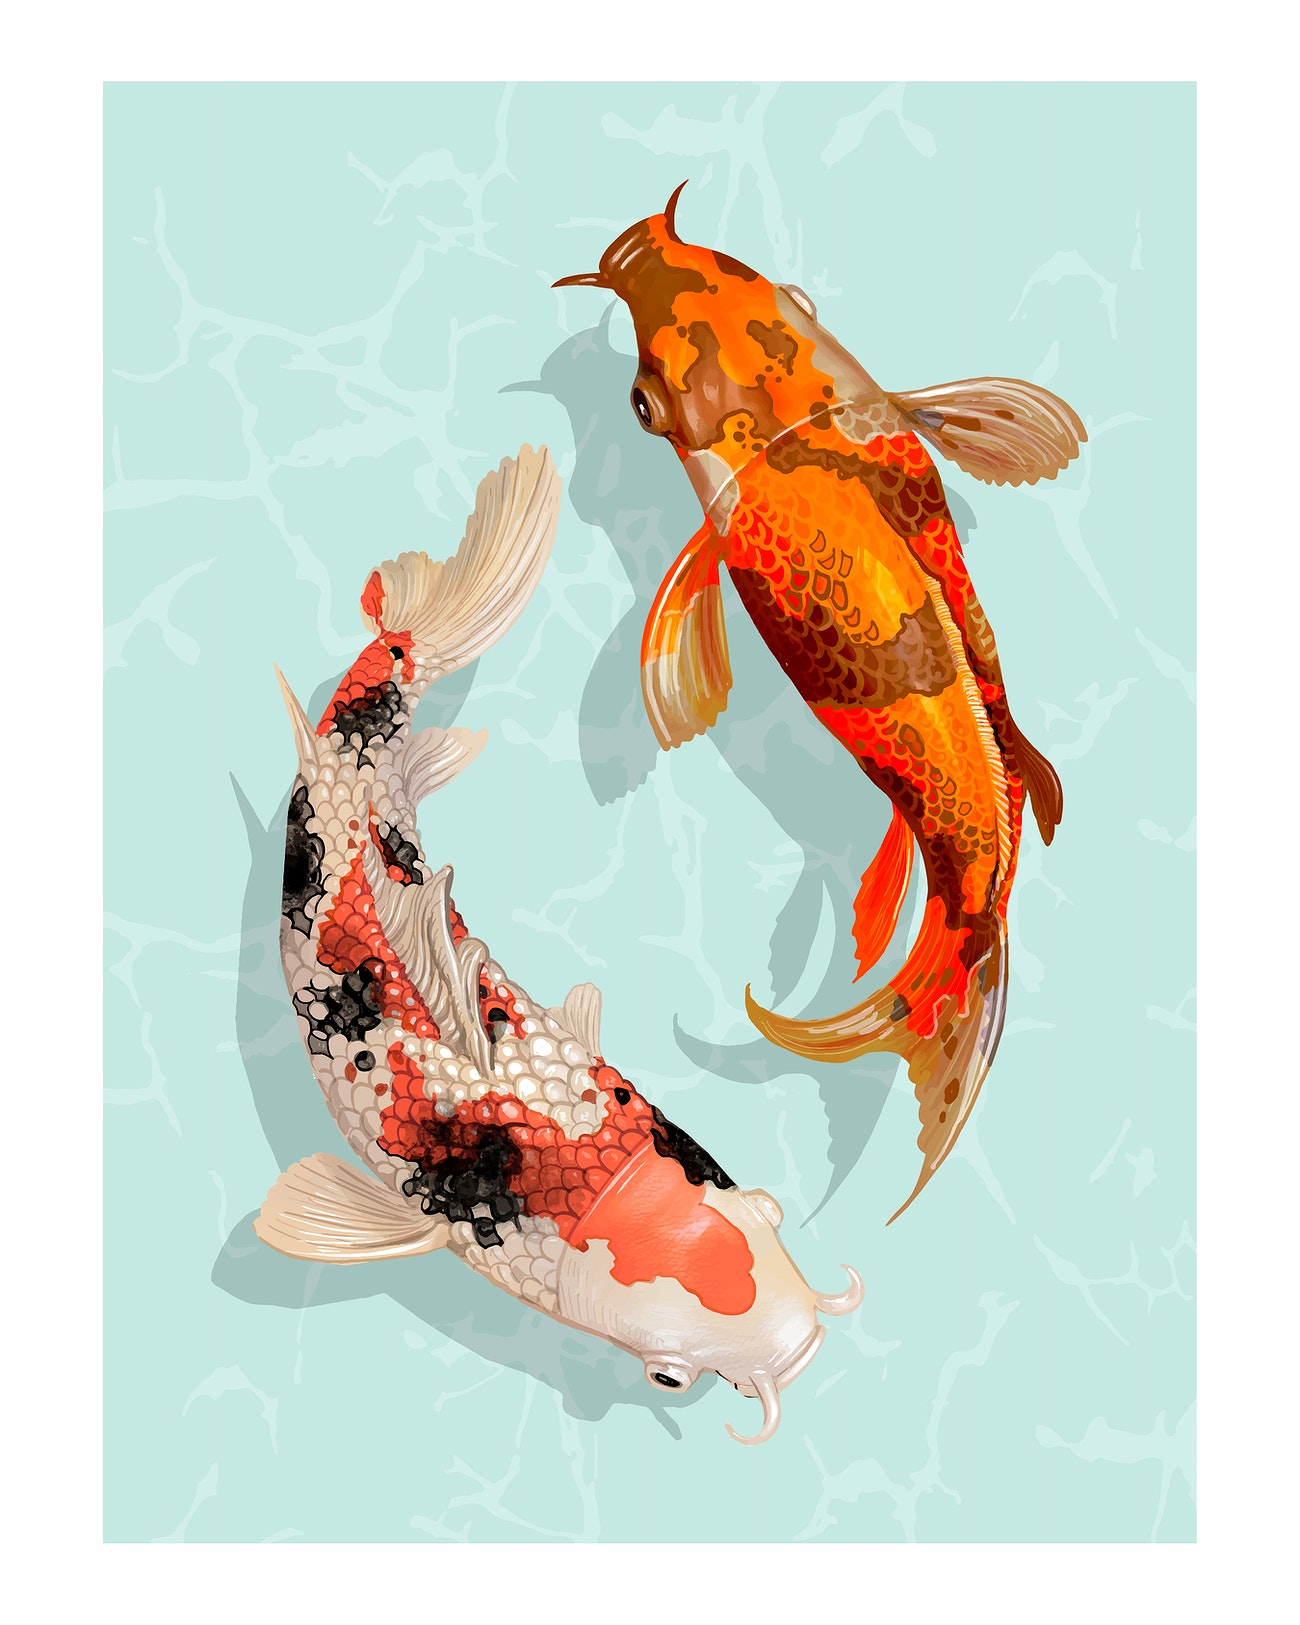 Two Japanese Koi Fish Swimming Illustration Wall Art Print And Poster Royalty Free Illustration 2267412